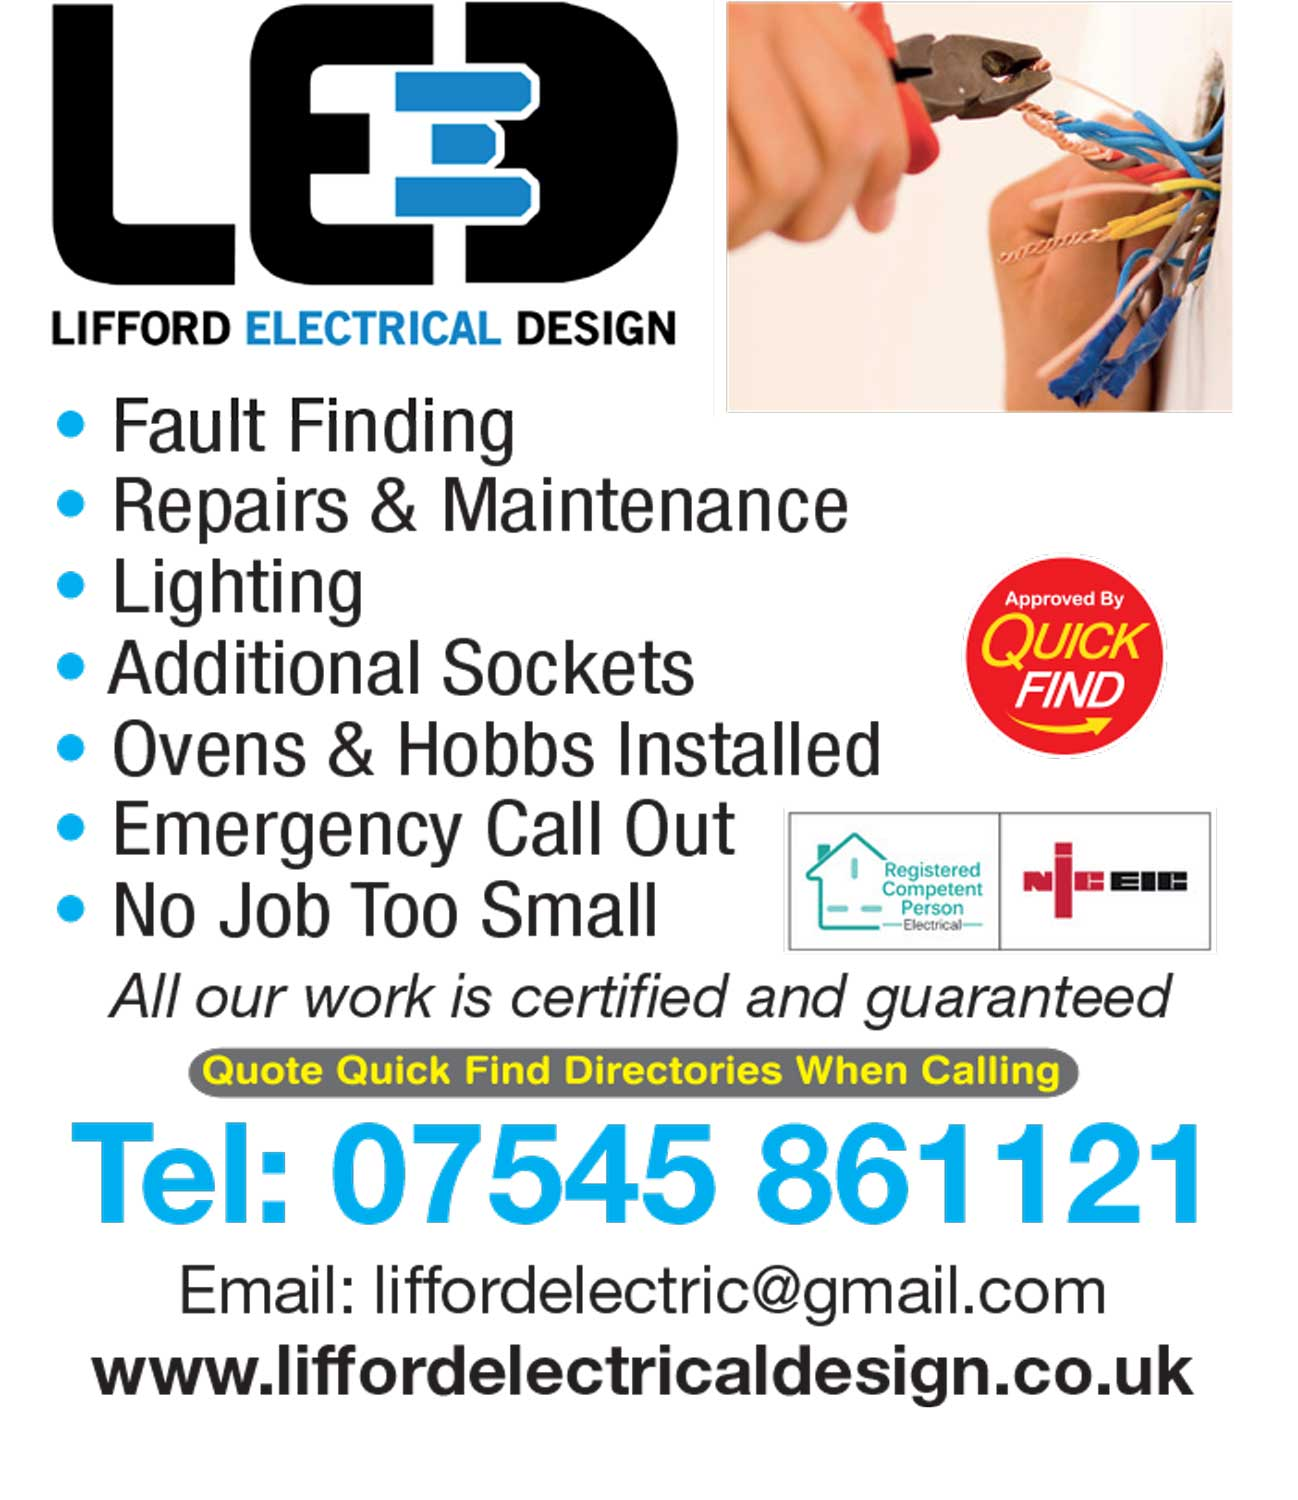 Lifford Electrical Design